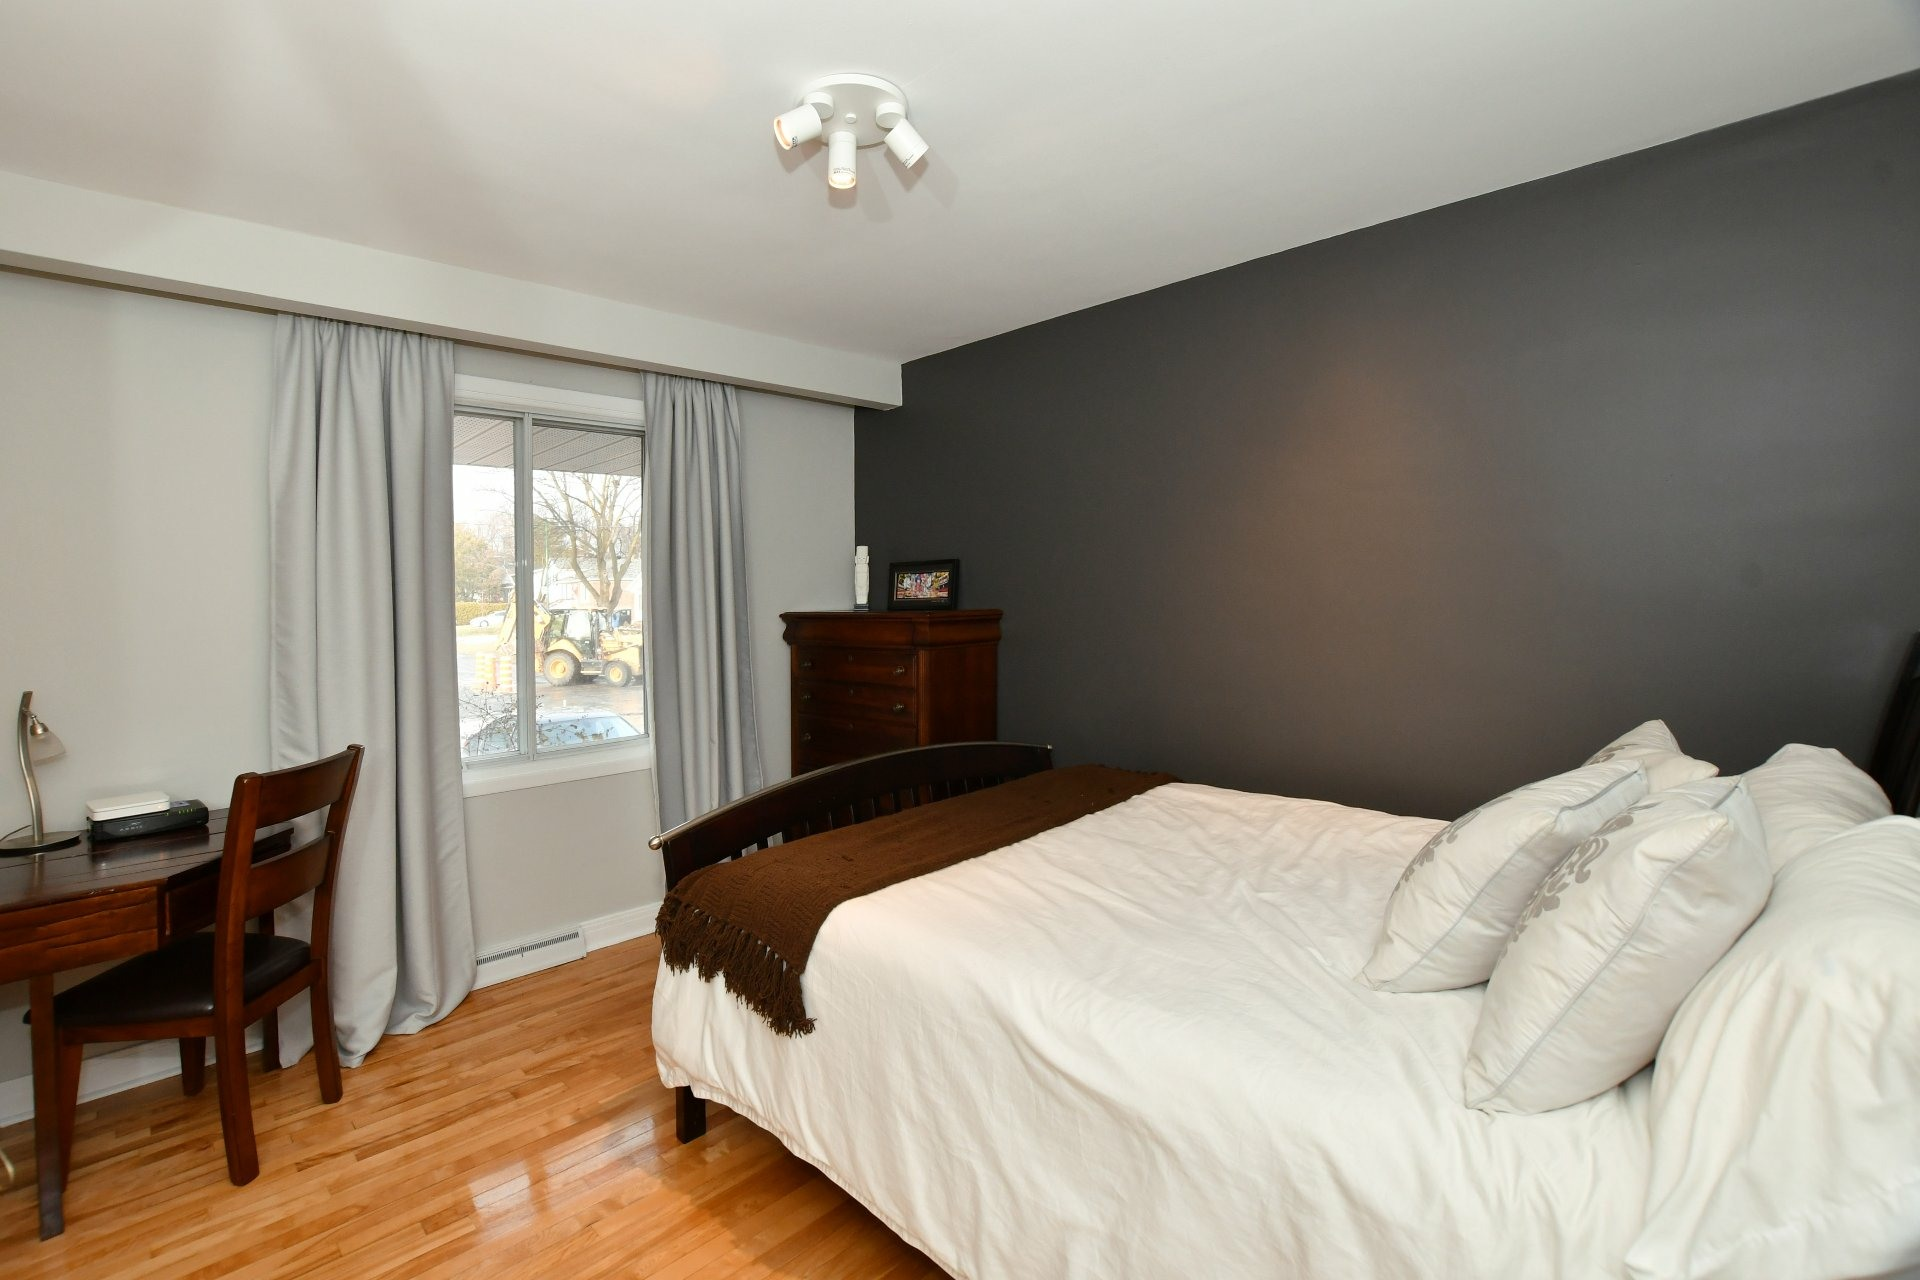 image 12 - House For sale Pointe-Claire - 10 rooms